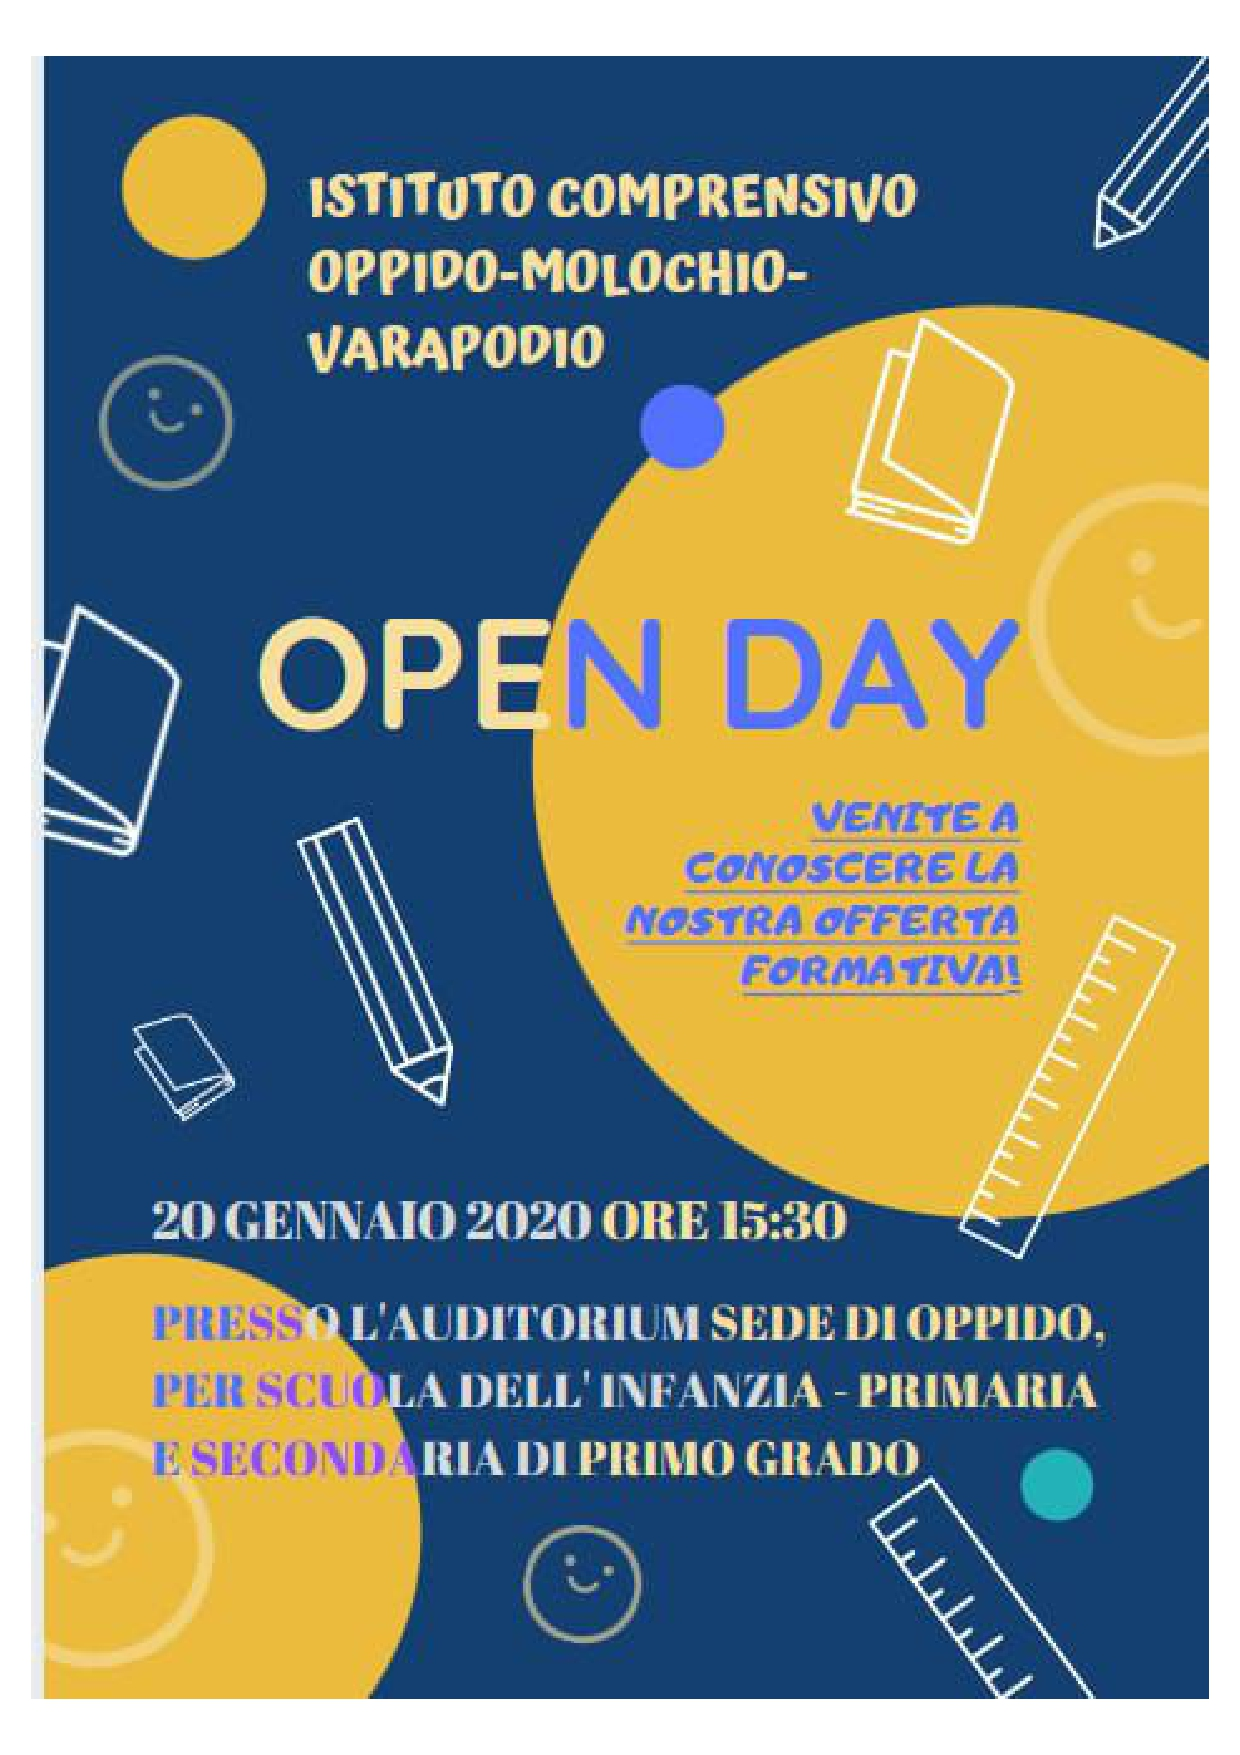 OPEN DAY OPPIDO M page-0001